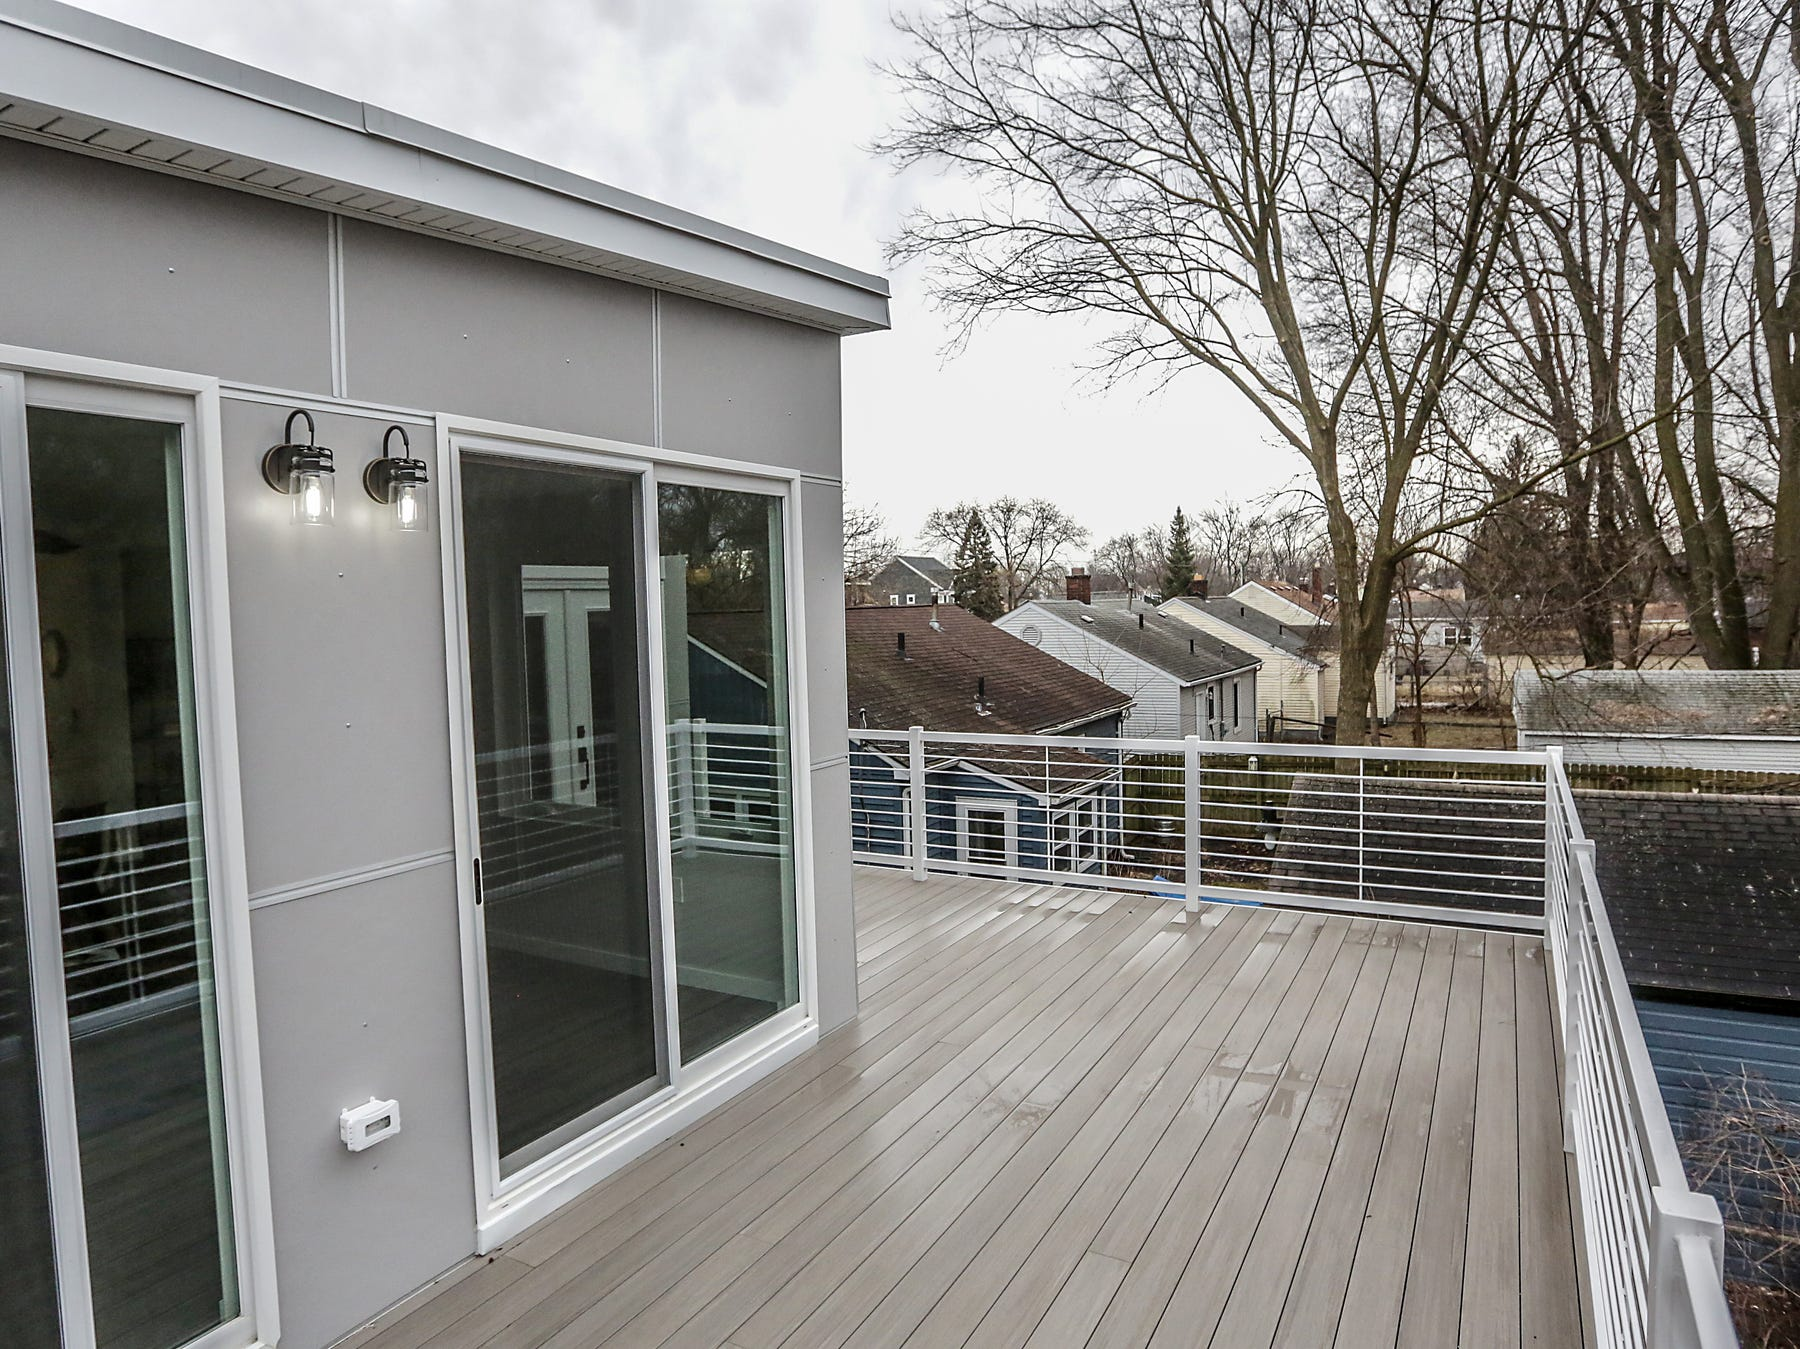 On the second story there is a Trex balcony that is 320 square feet overlooking the neighborhood in Ferndale, Mich. photographed on Thursday, March 14, 2019.